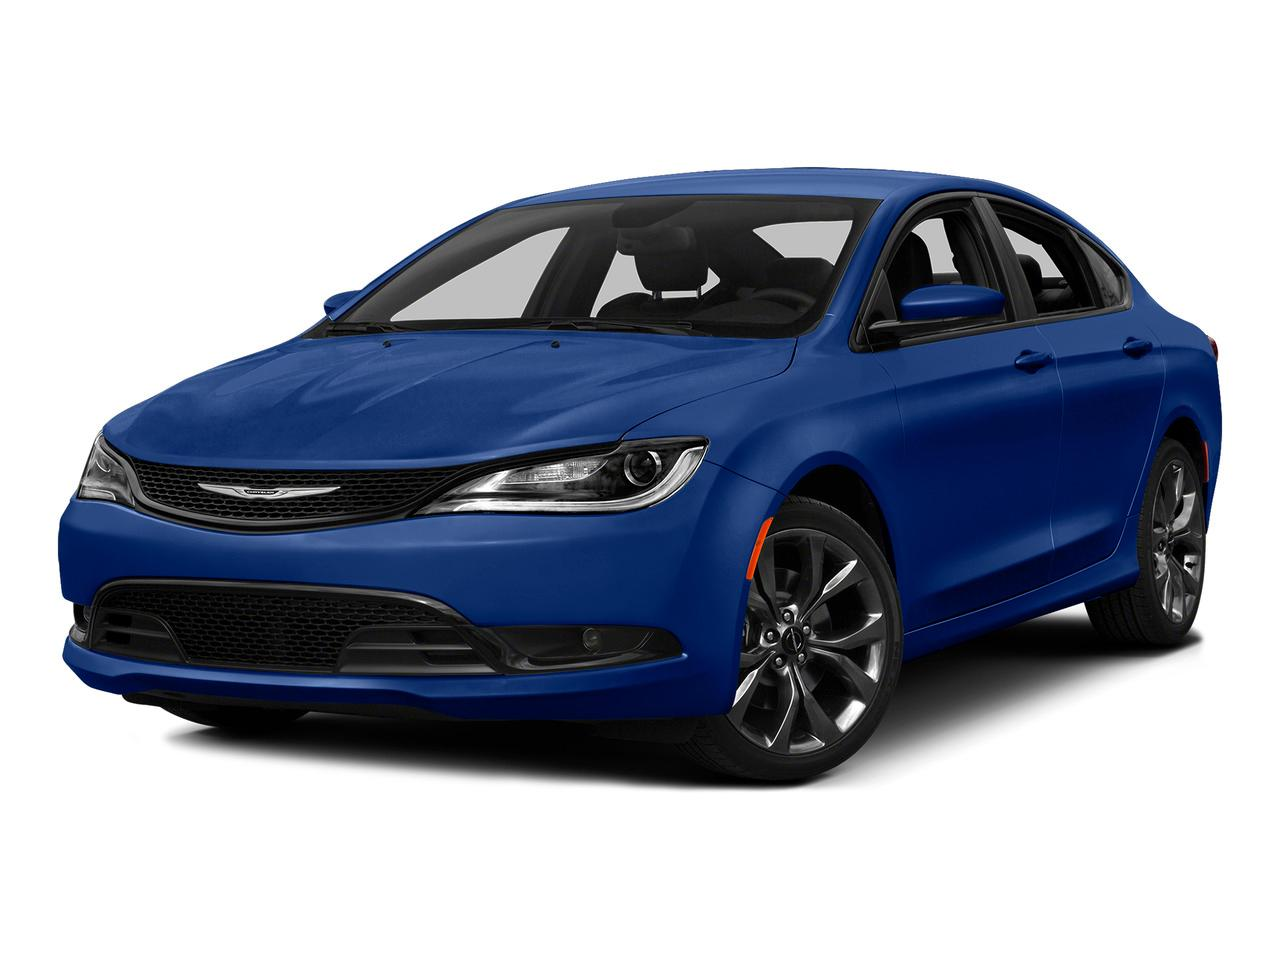 2015 Chrysler 200 Vehicle Photo in Plainfield, IL 60586